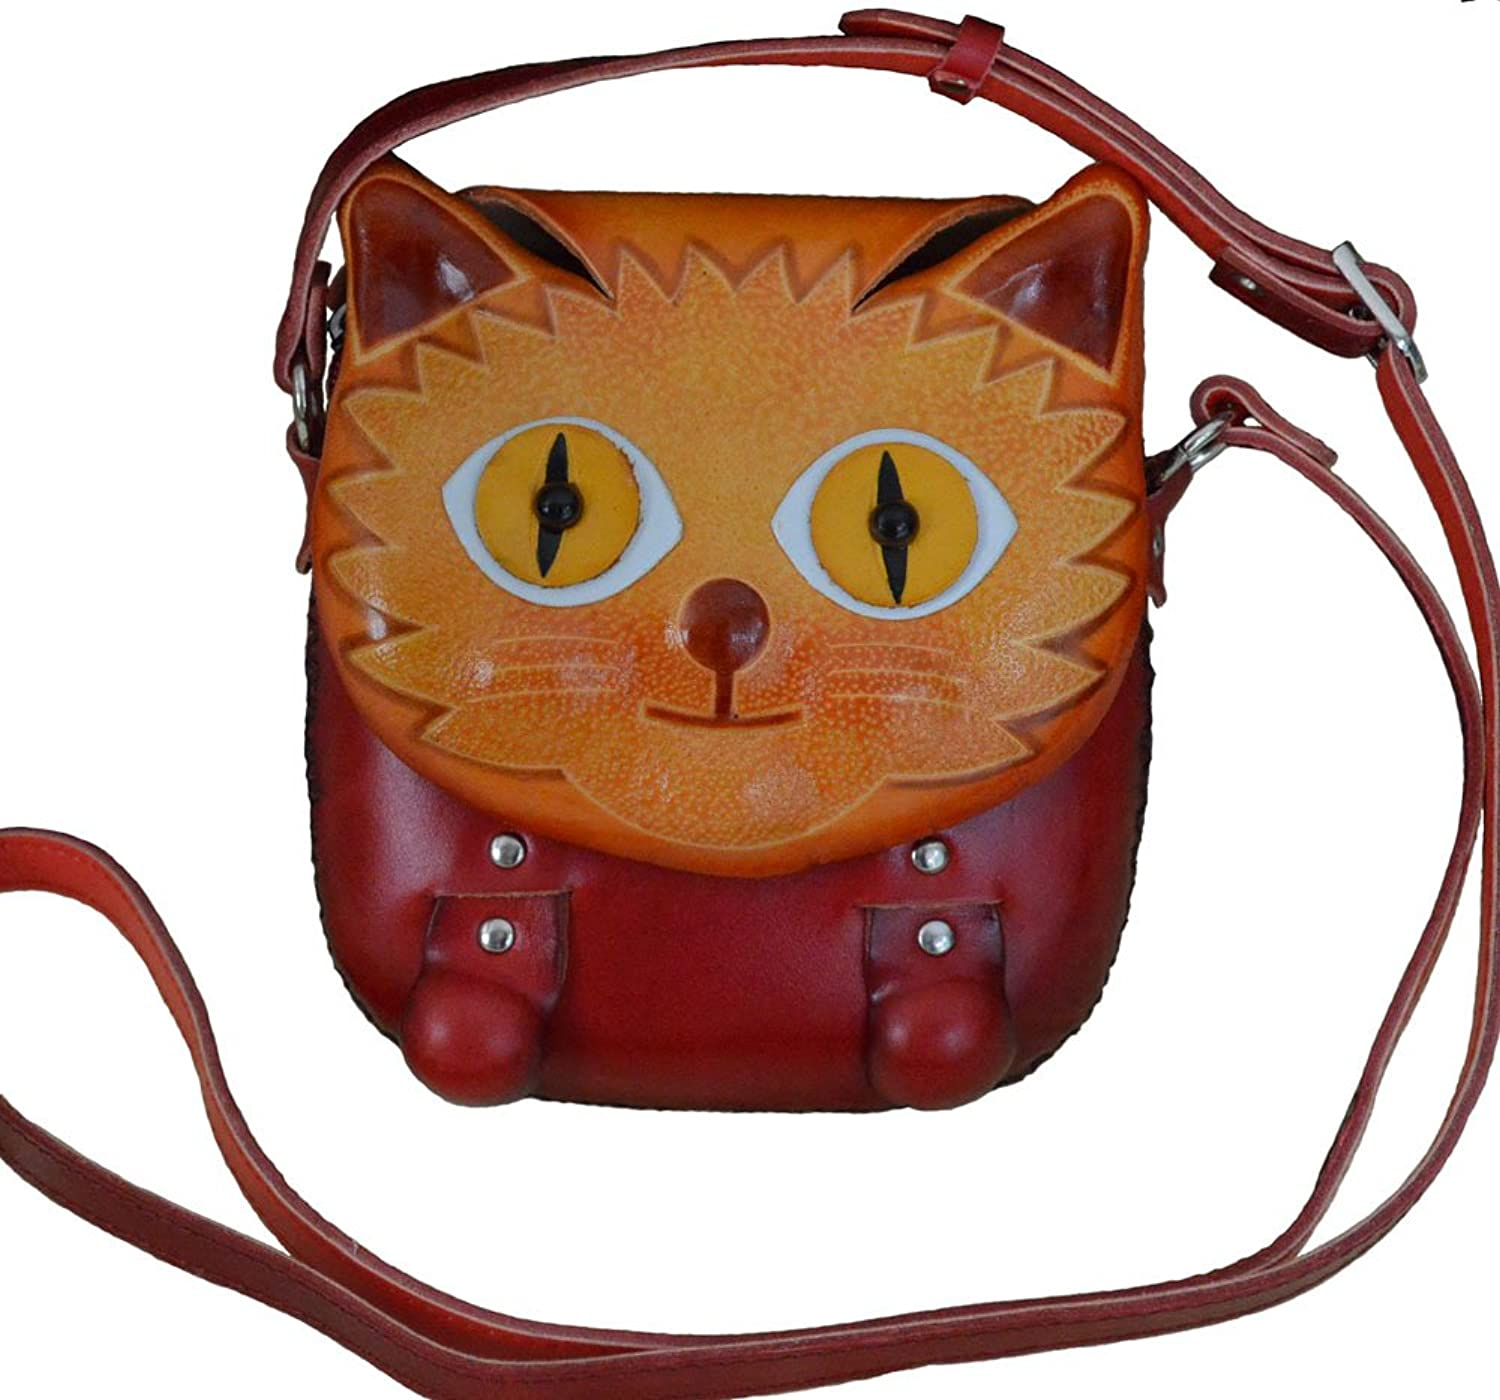 Beauty Kitty Cover,Genuine Leather CrossBody Bag,Handmade,a Collectible Satchel